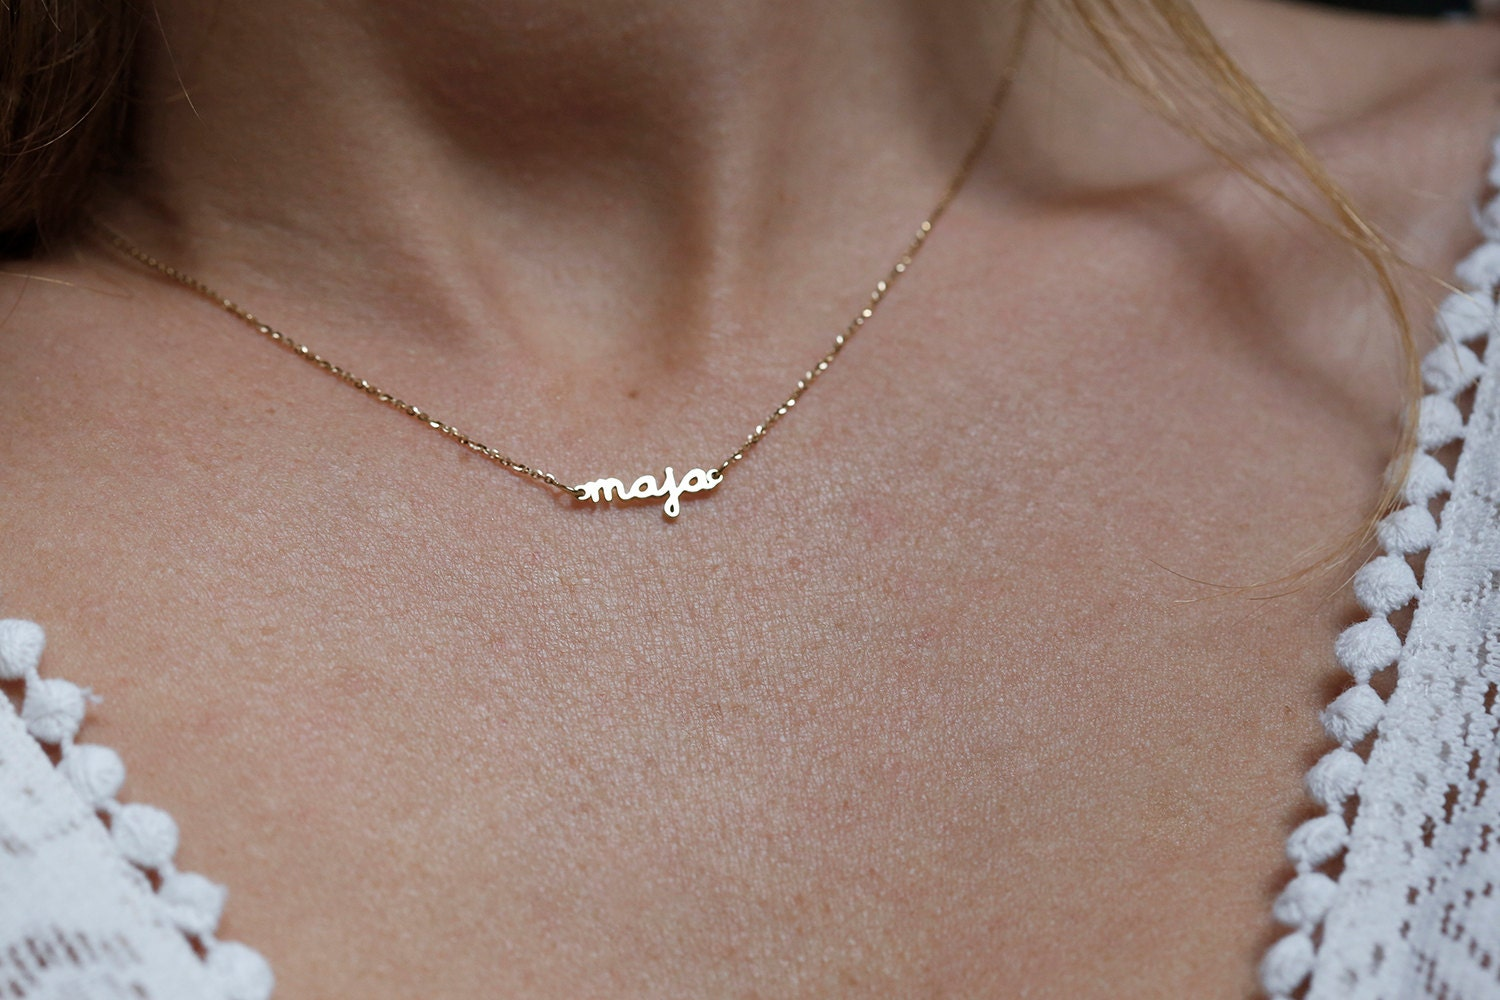 best name earring s mother children spirelinks gold interlocking mom on stud necklace names images jewelry kids dainty and ring with chains personalized pinterest baby